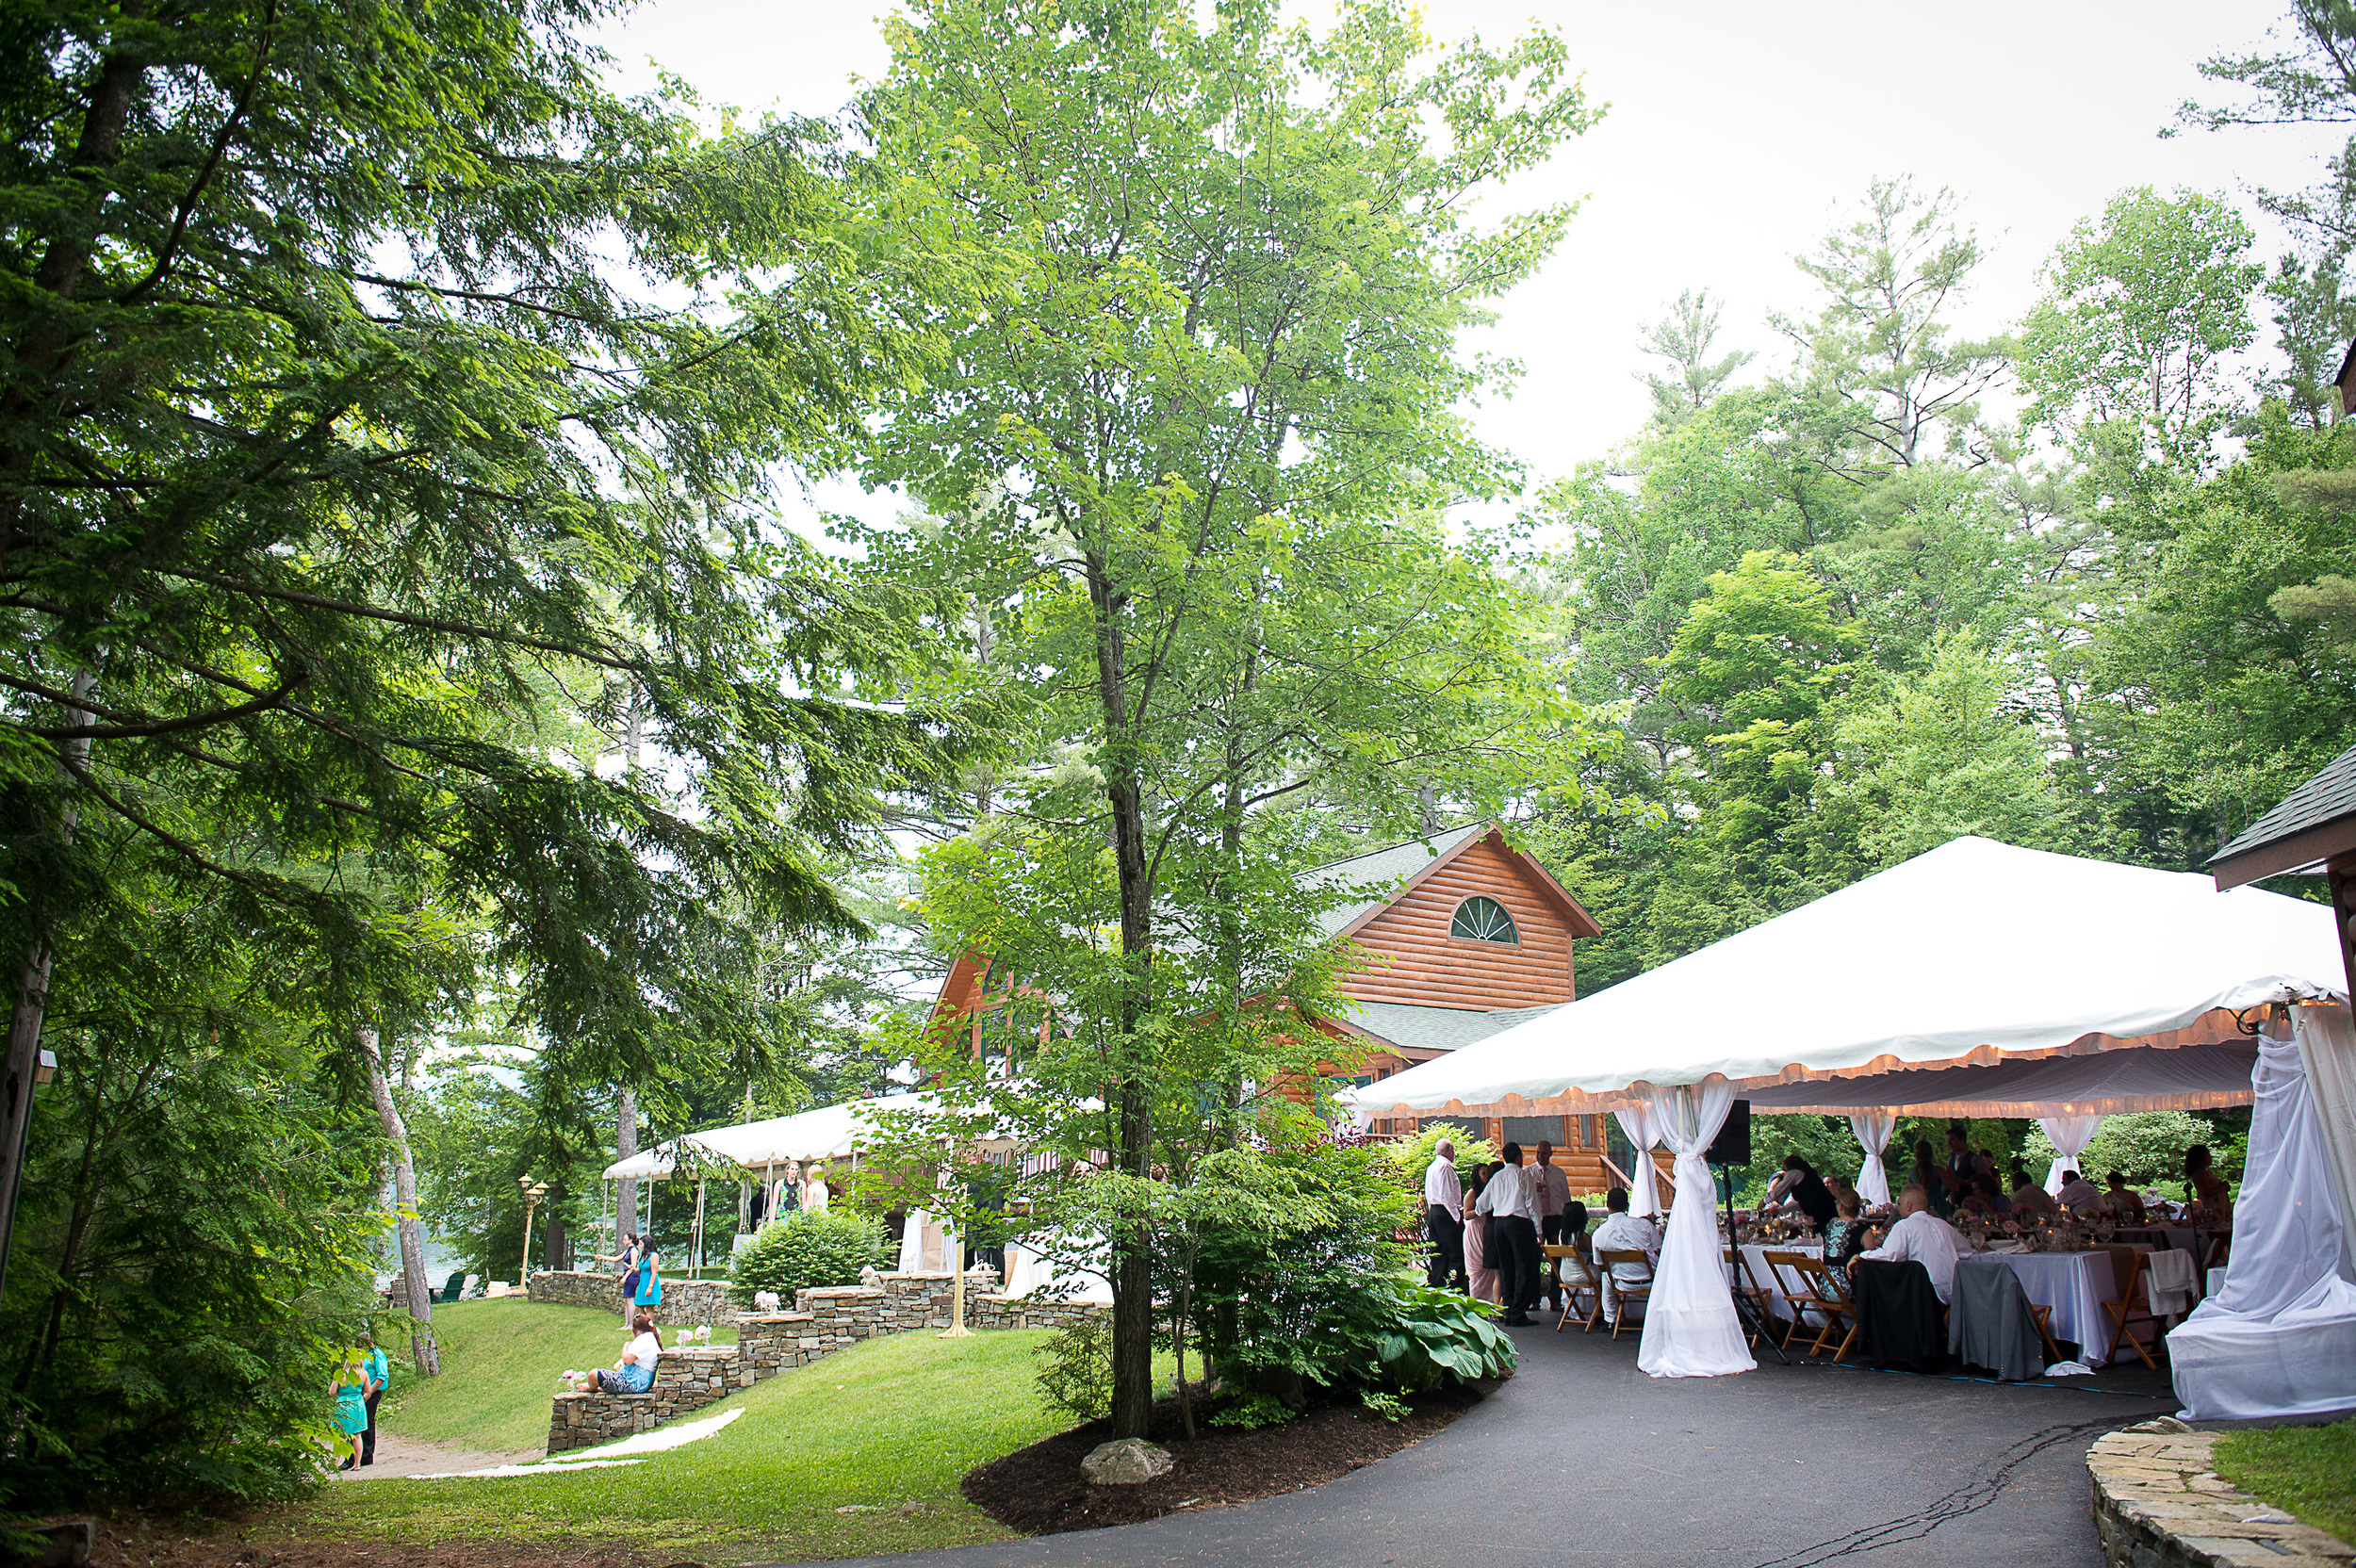 NYC-Wedding-Planner-Andrea-Freeman-Events-Hudson-Valley-Catskills-Private-Estate-13.jpg